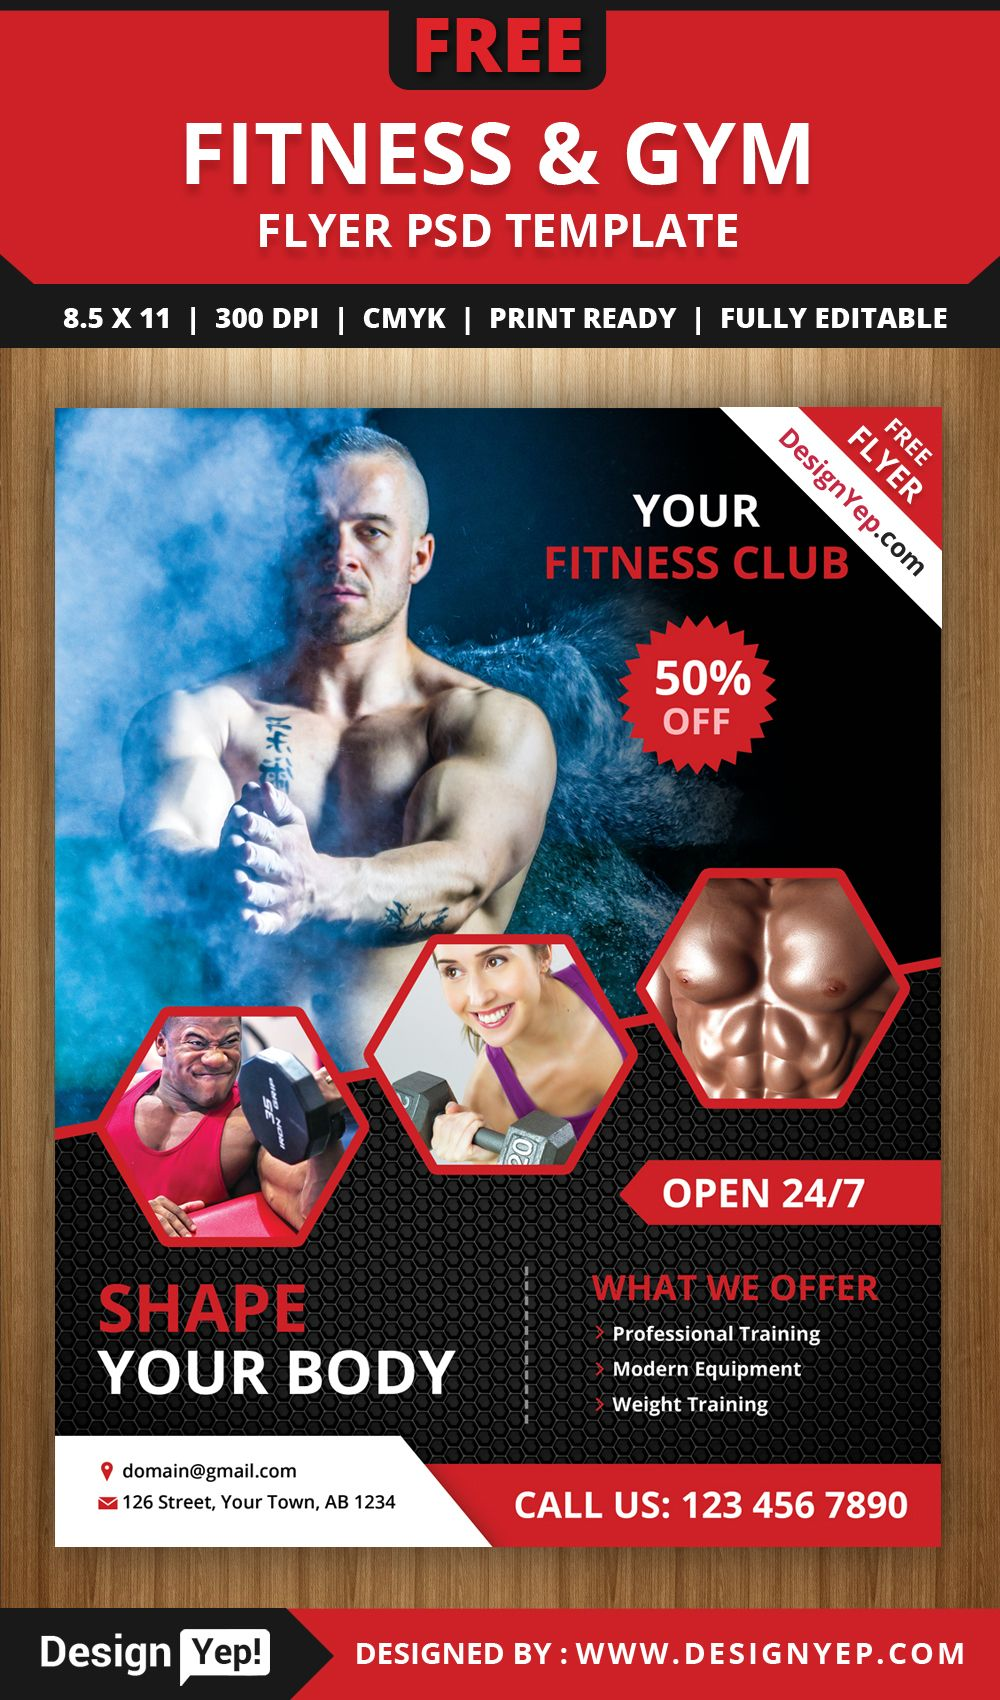 Free Fitness And Gym Flyer Psd Template Free Gimnasio Optimismo